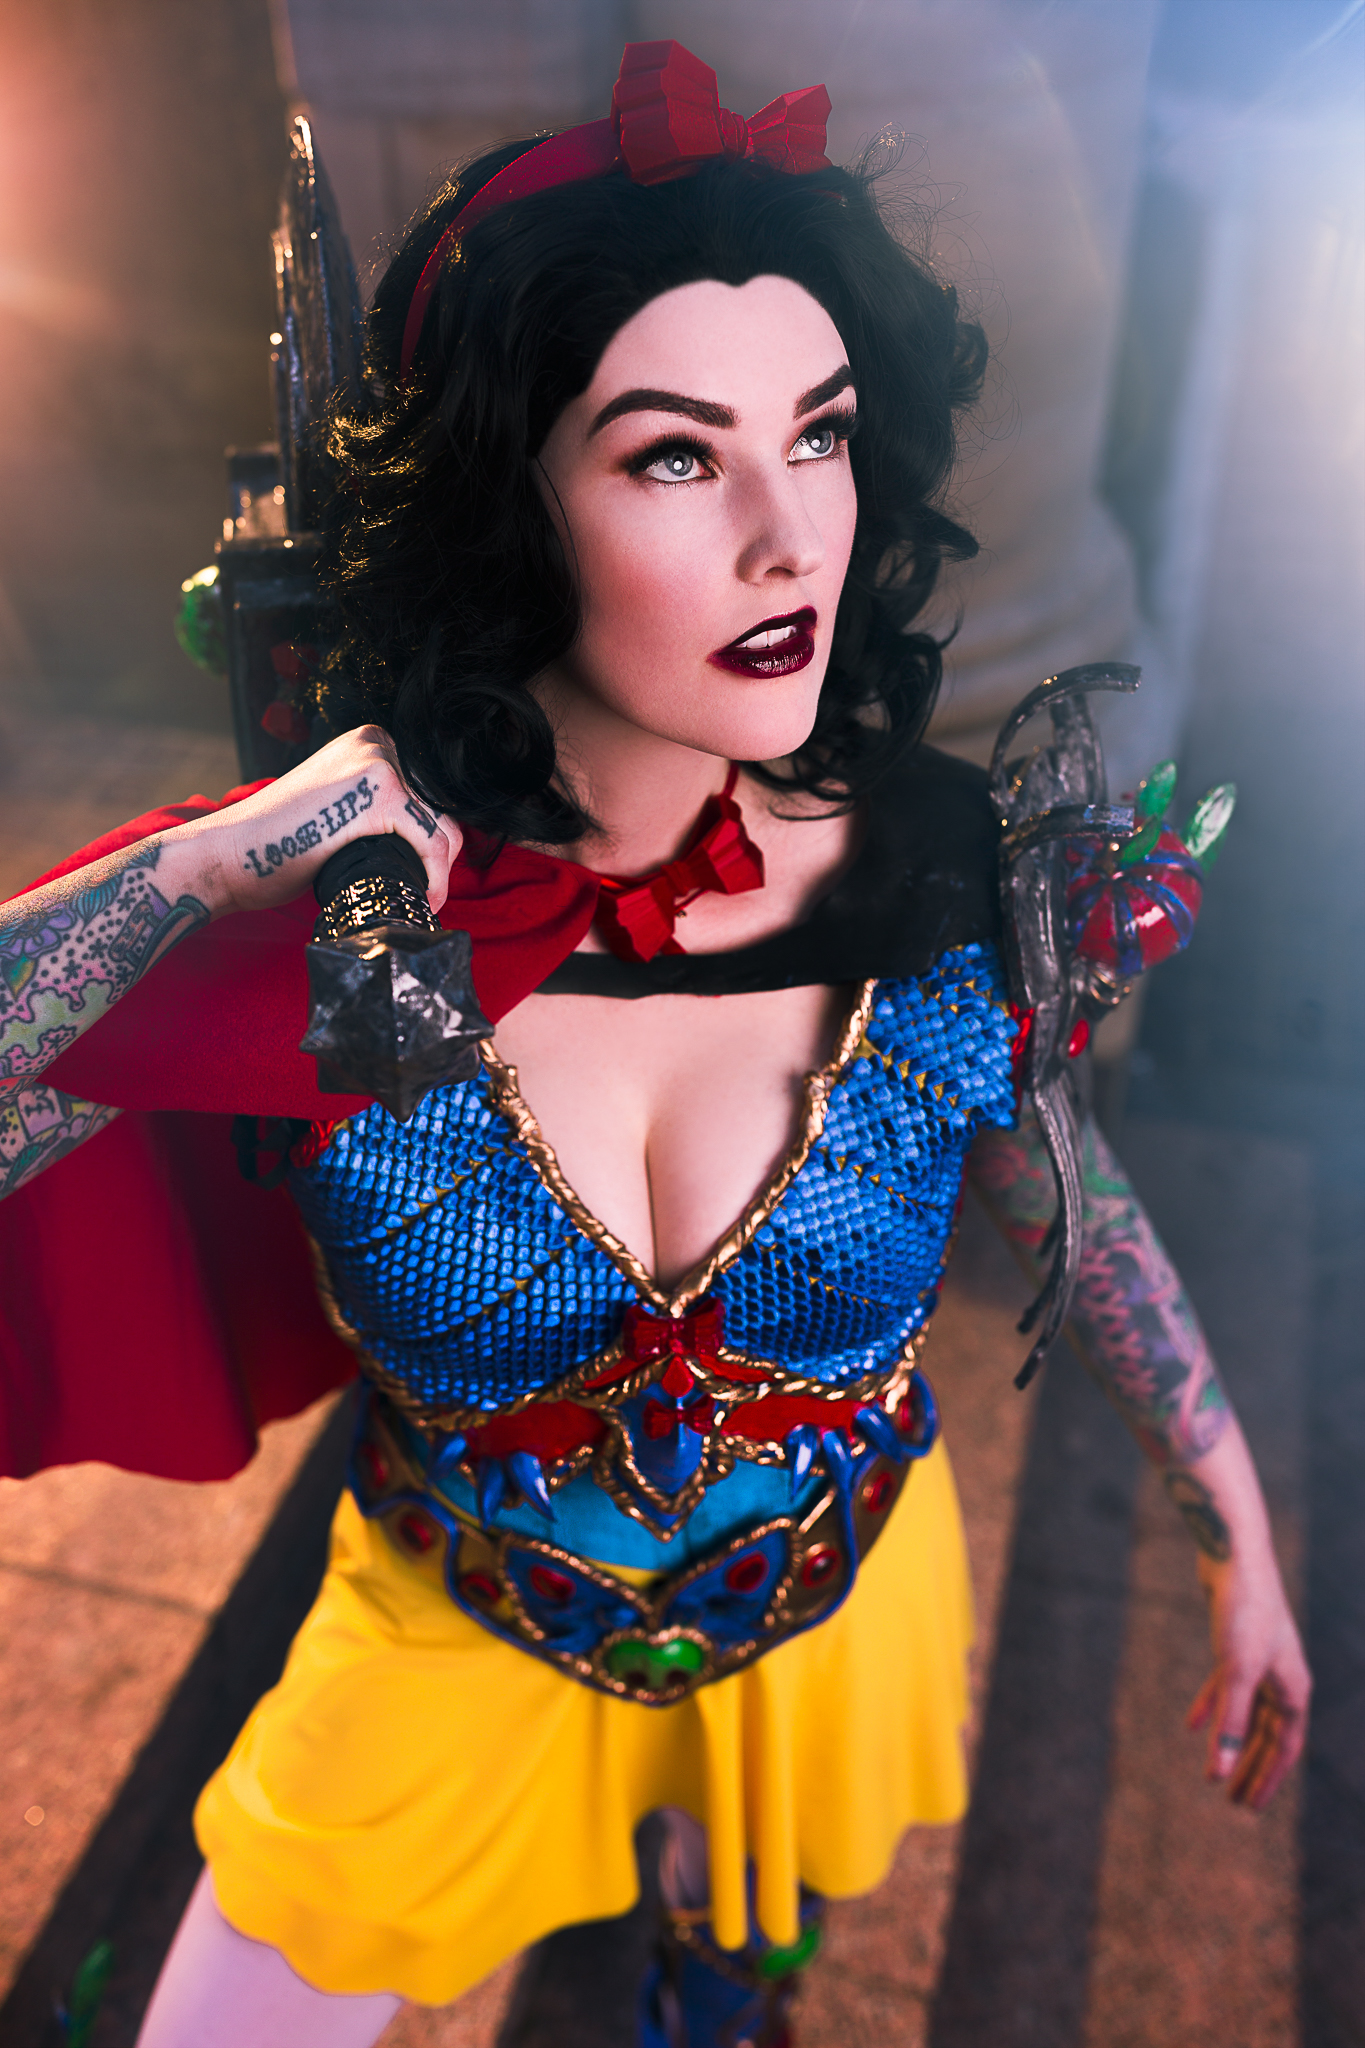 AmieDD Disney Battle Princess Snow White Dragon Con 3D Printed Armor